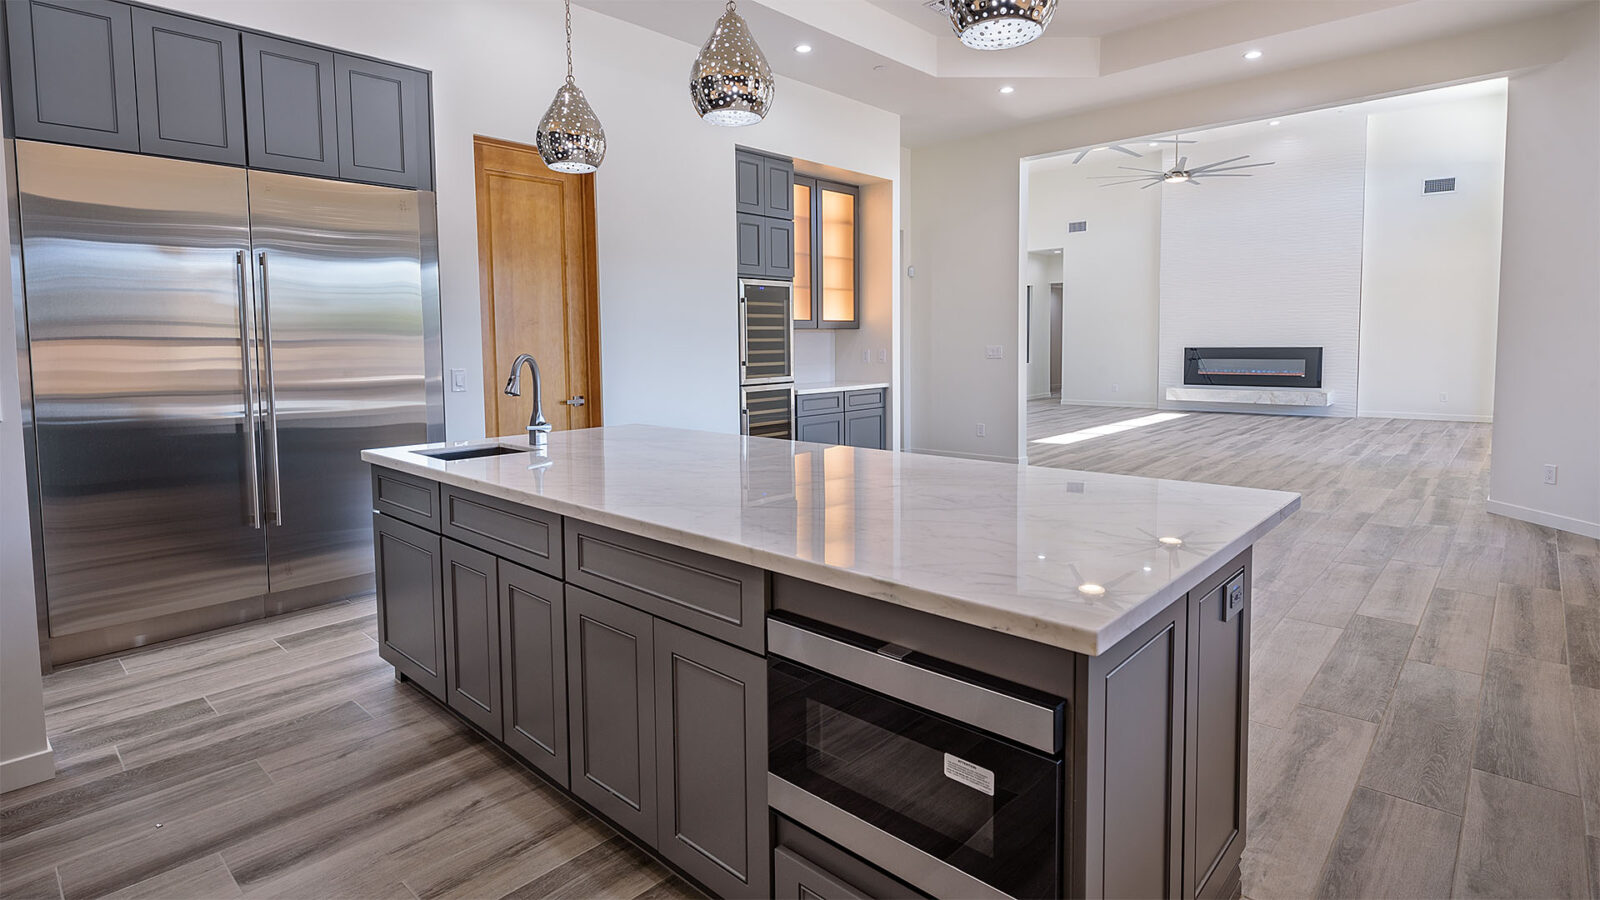 A kitchen island with a white marbled surface and a grey foundation